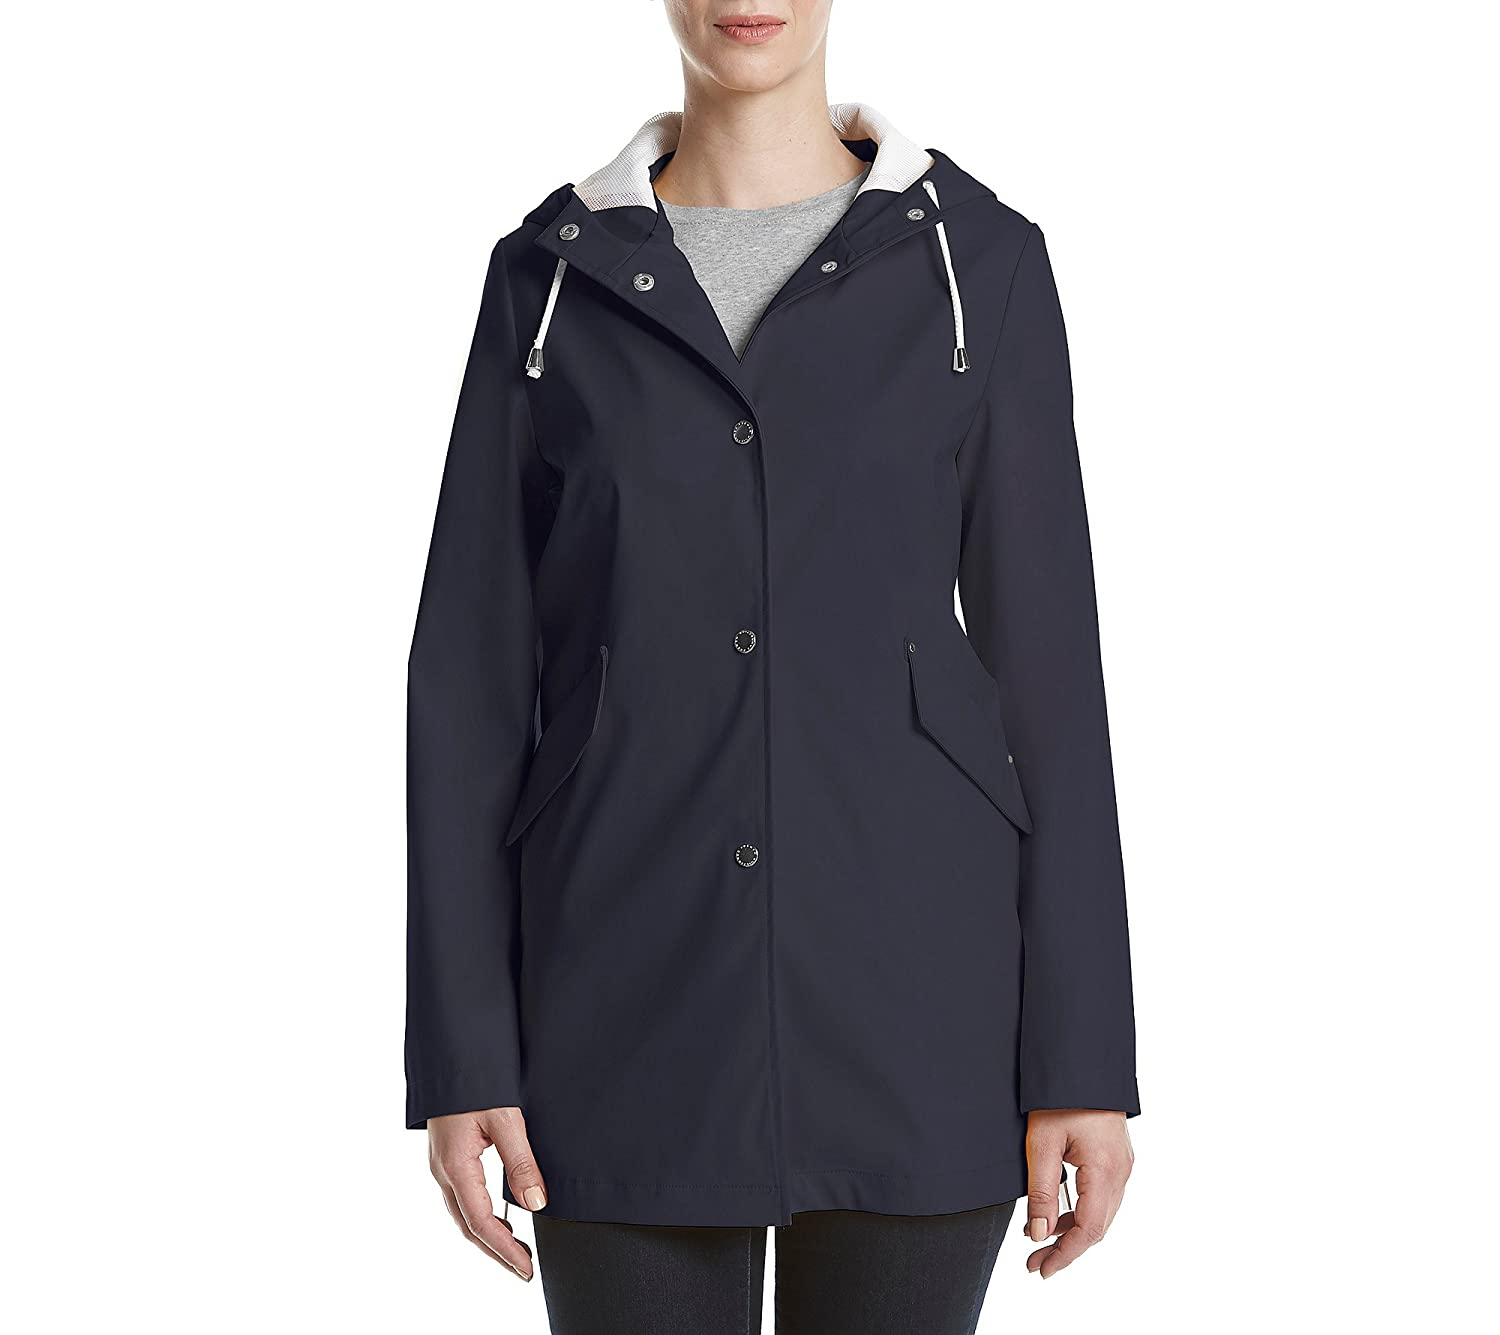 bluee French Connection Hooded Rain Jacket